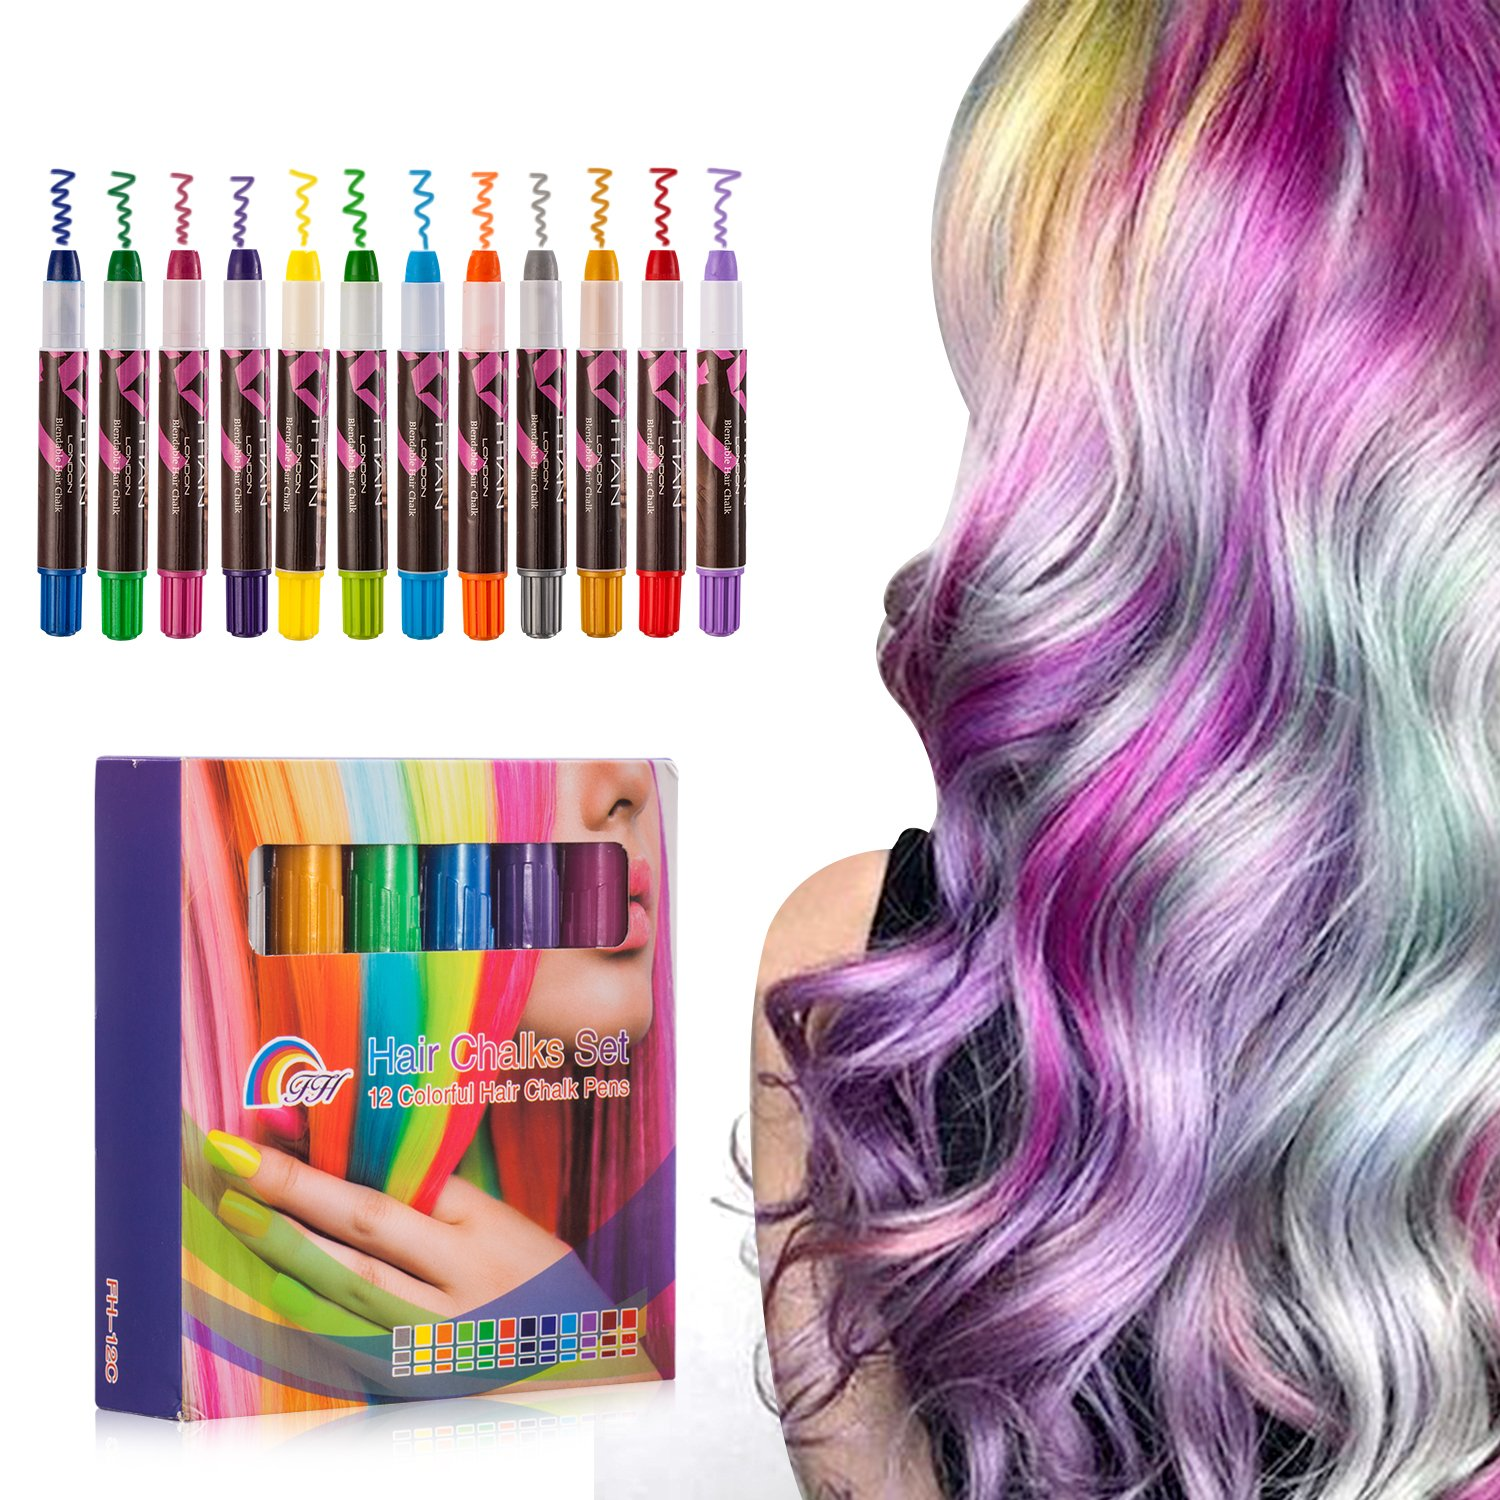 Hair Chalk Set Color Temporary Paint Pen Non-Toxic Portable Hair Dye Set Toys Gifts for Girls Age 4 5 6 7 8 + Birthday Party(12pcs)